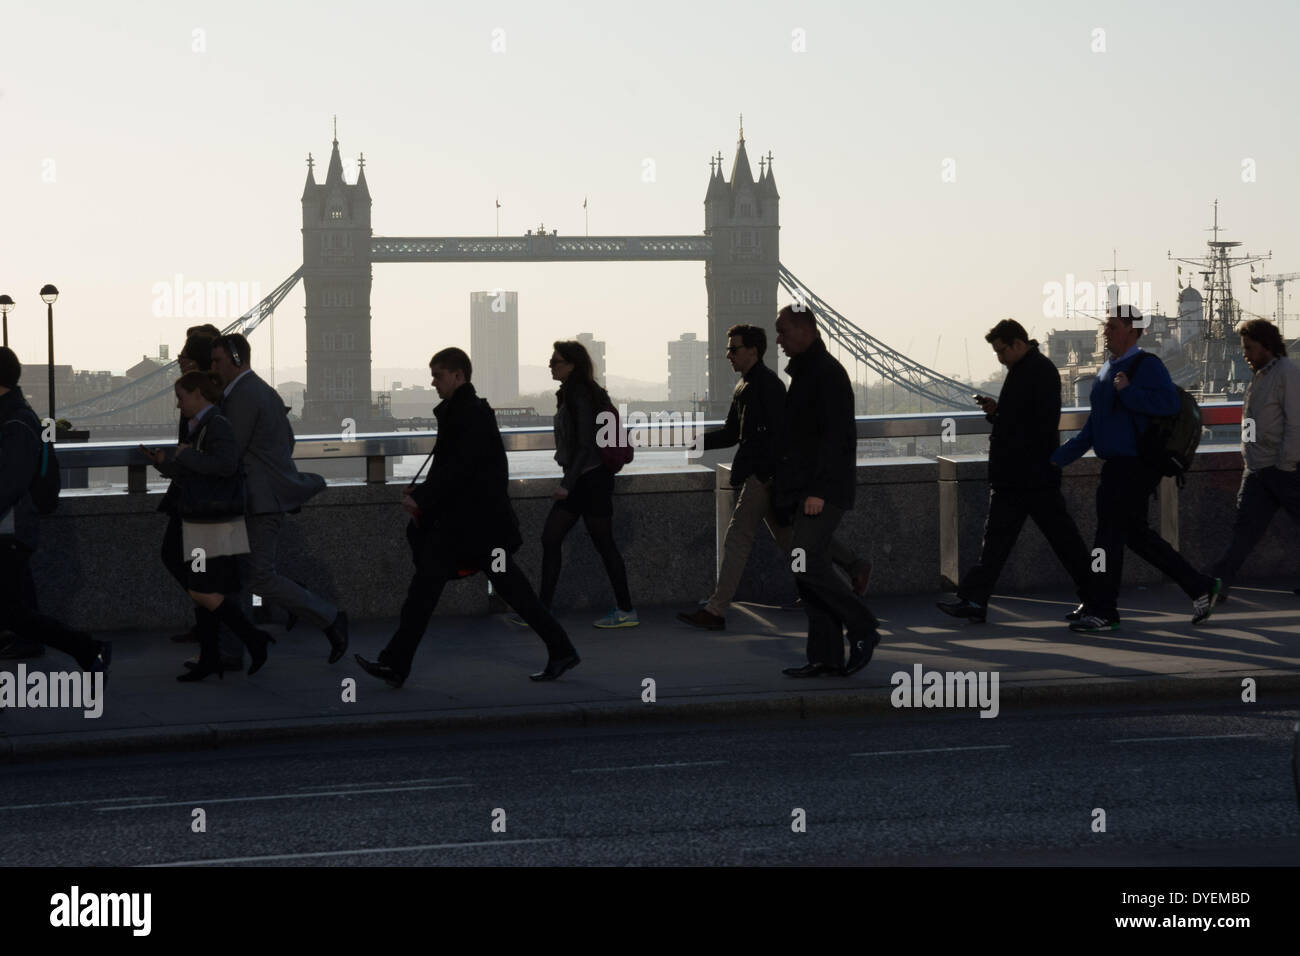 London UK. 16 April 2014. Commuters stream across London Bridge with Tower Bridge in the distance as London wakes to another beautiful sunny morning Credit:  Patricia Phillips / Alamy Live News - Stock Image